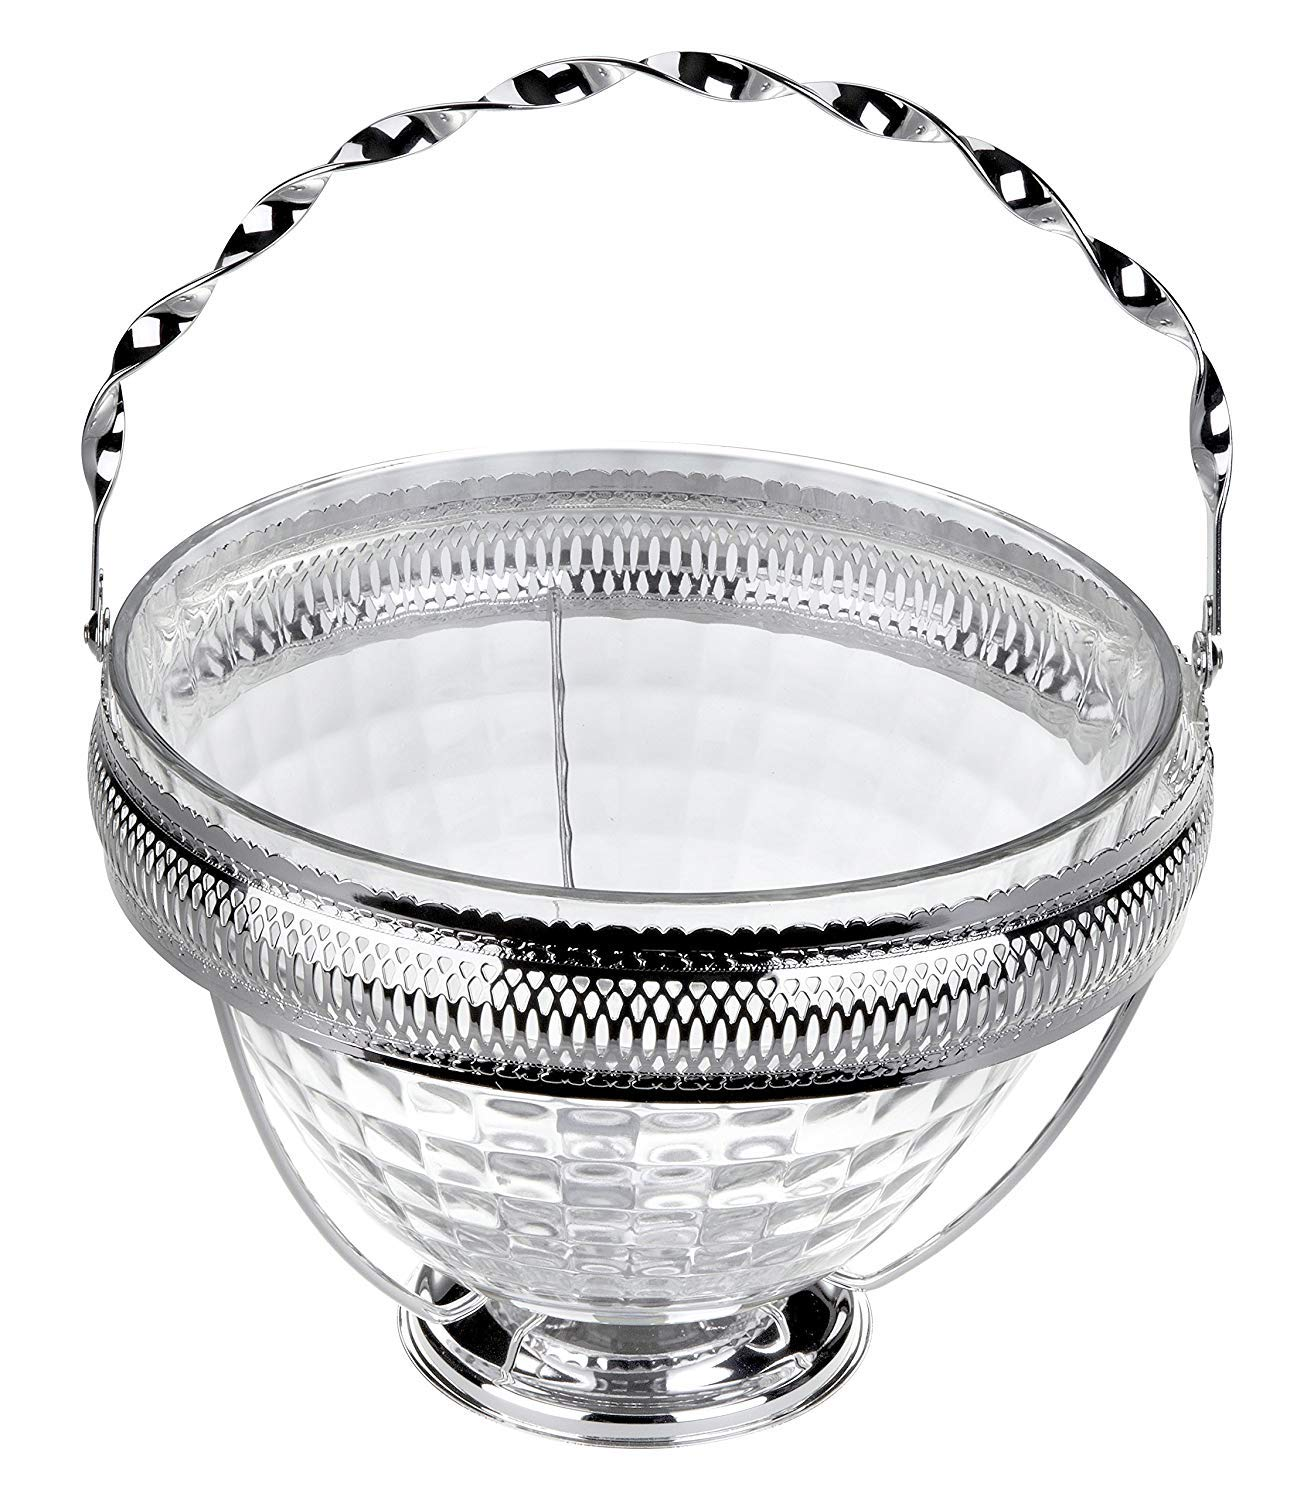 Fruit Bowl in Silver Plated Holder Queen Anne Tableware Ltd 023